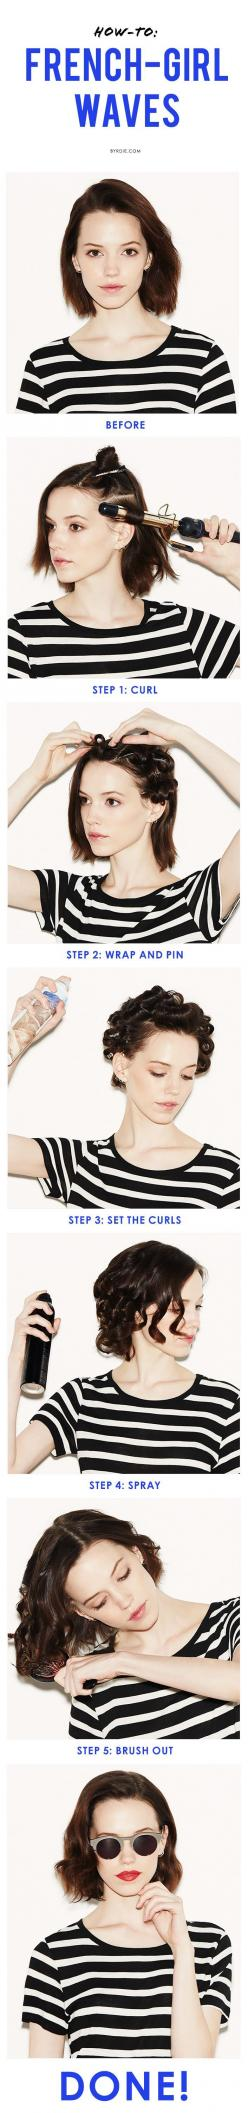 A guide to making waves. #hairstyle #tutorial #beauty: Short Hair, French Waves, Hair Tutorial, French Girls, Hair Style, Cool Girl Waves, Step By Step Guide